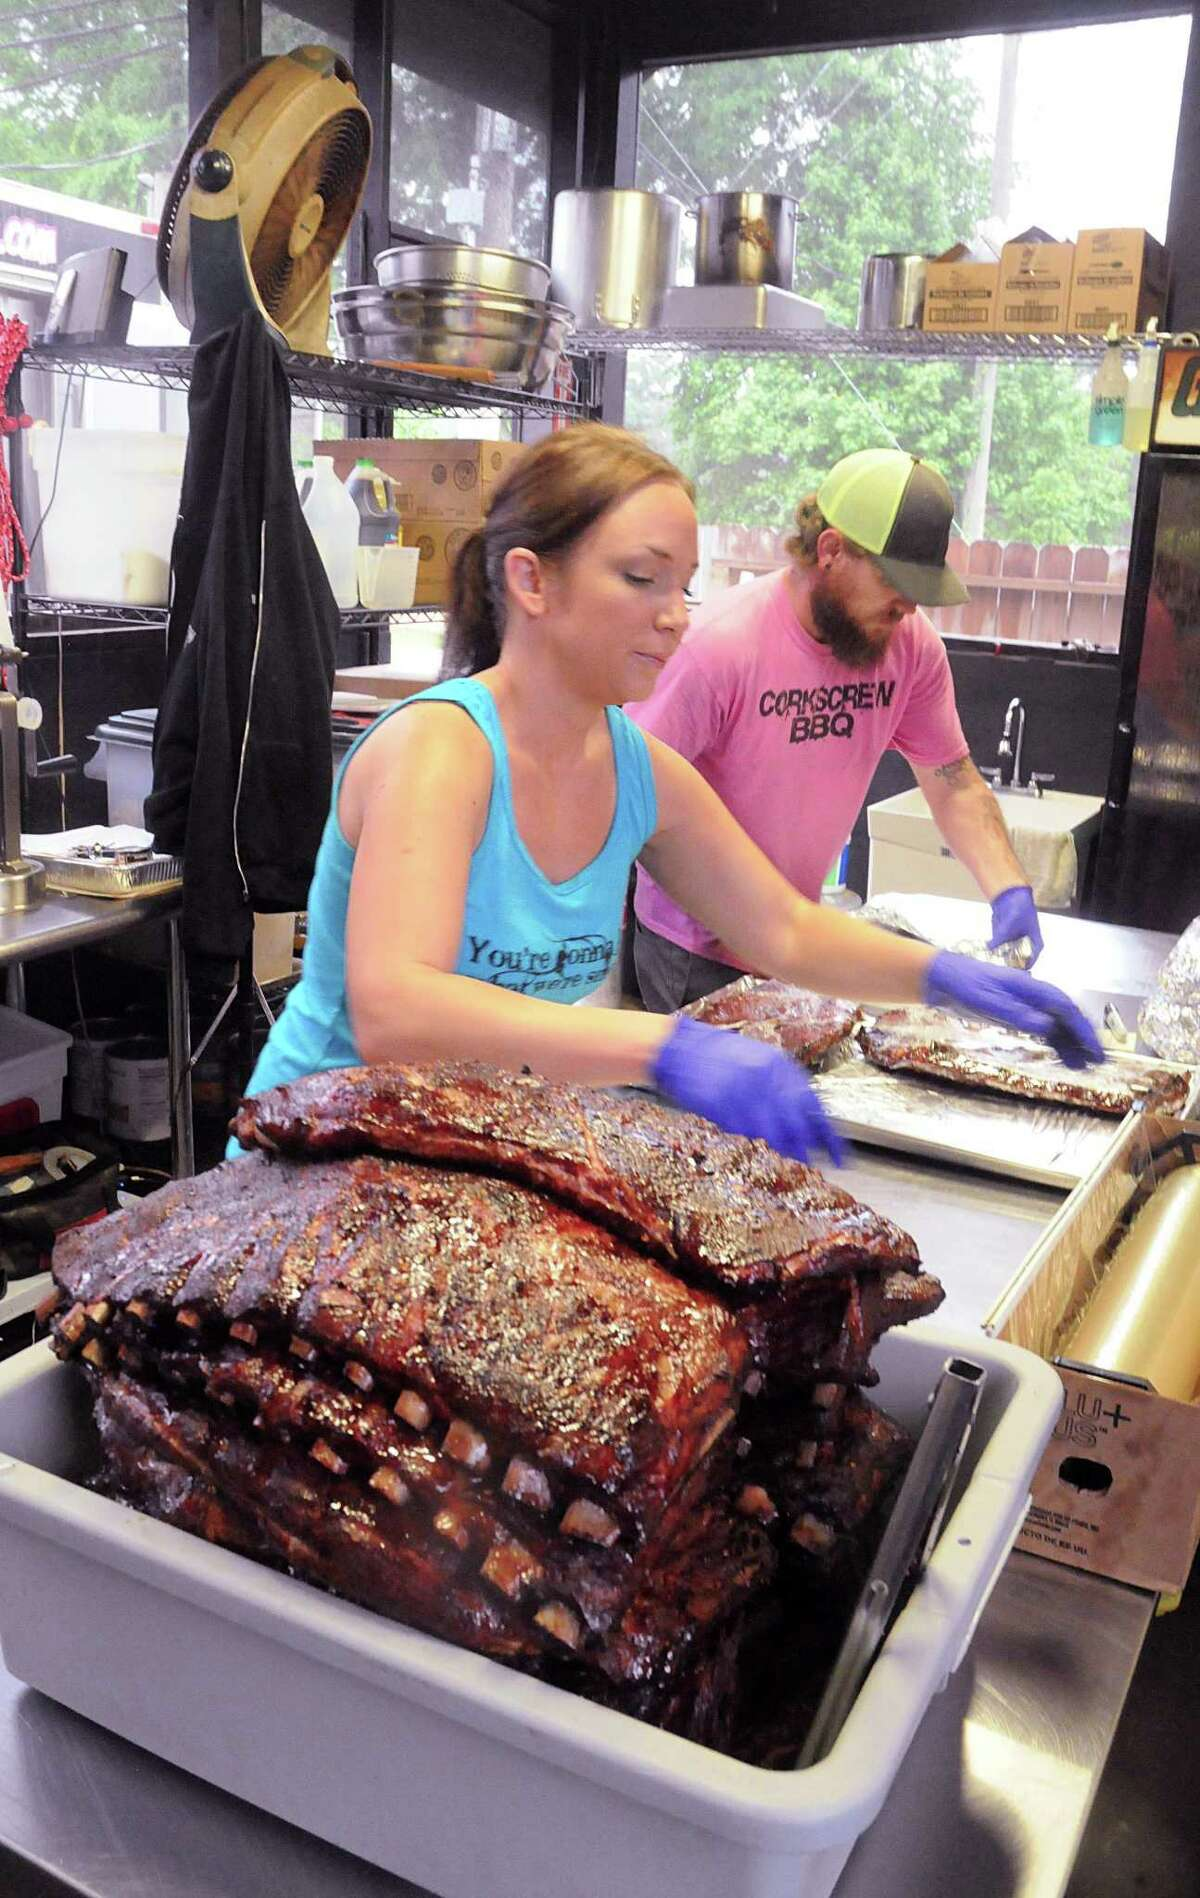 Nichole and Will Buckman wrap to go barbecue rib orders at their Corkscrew BBQ.